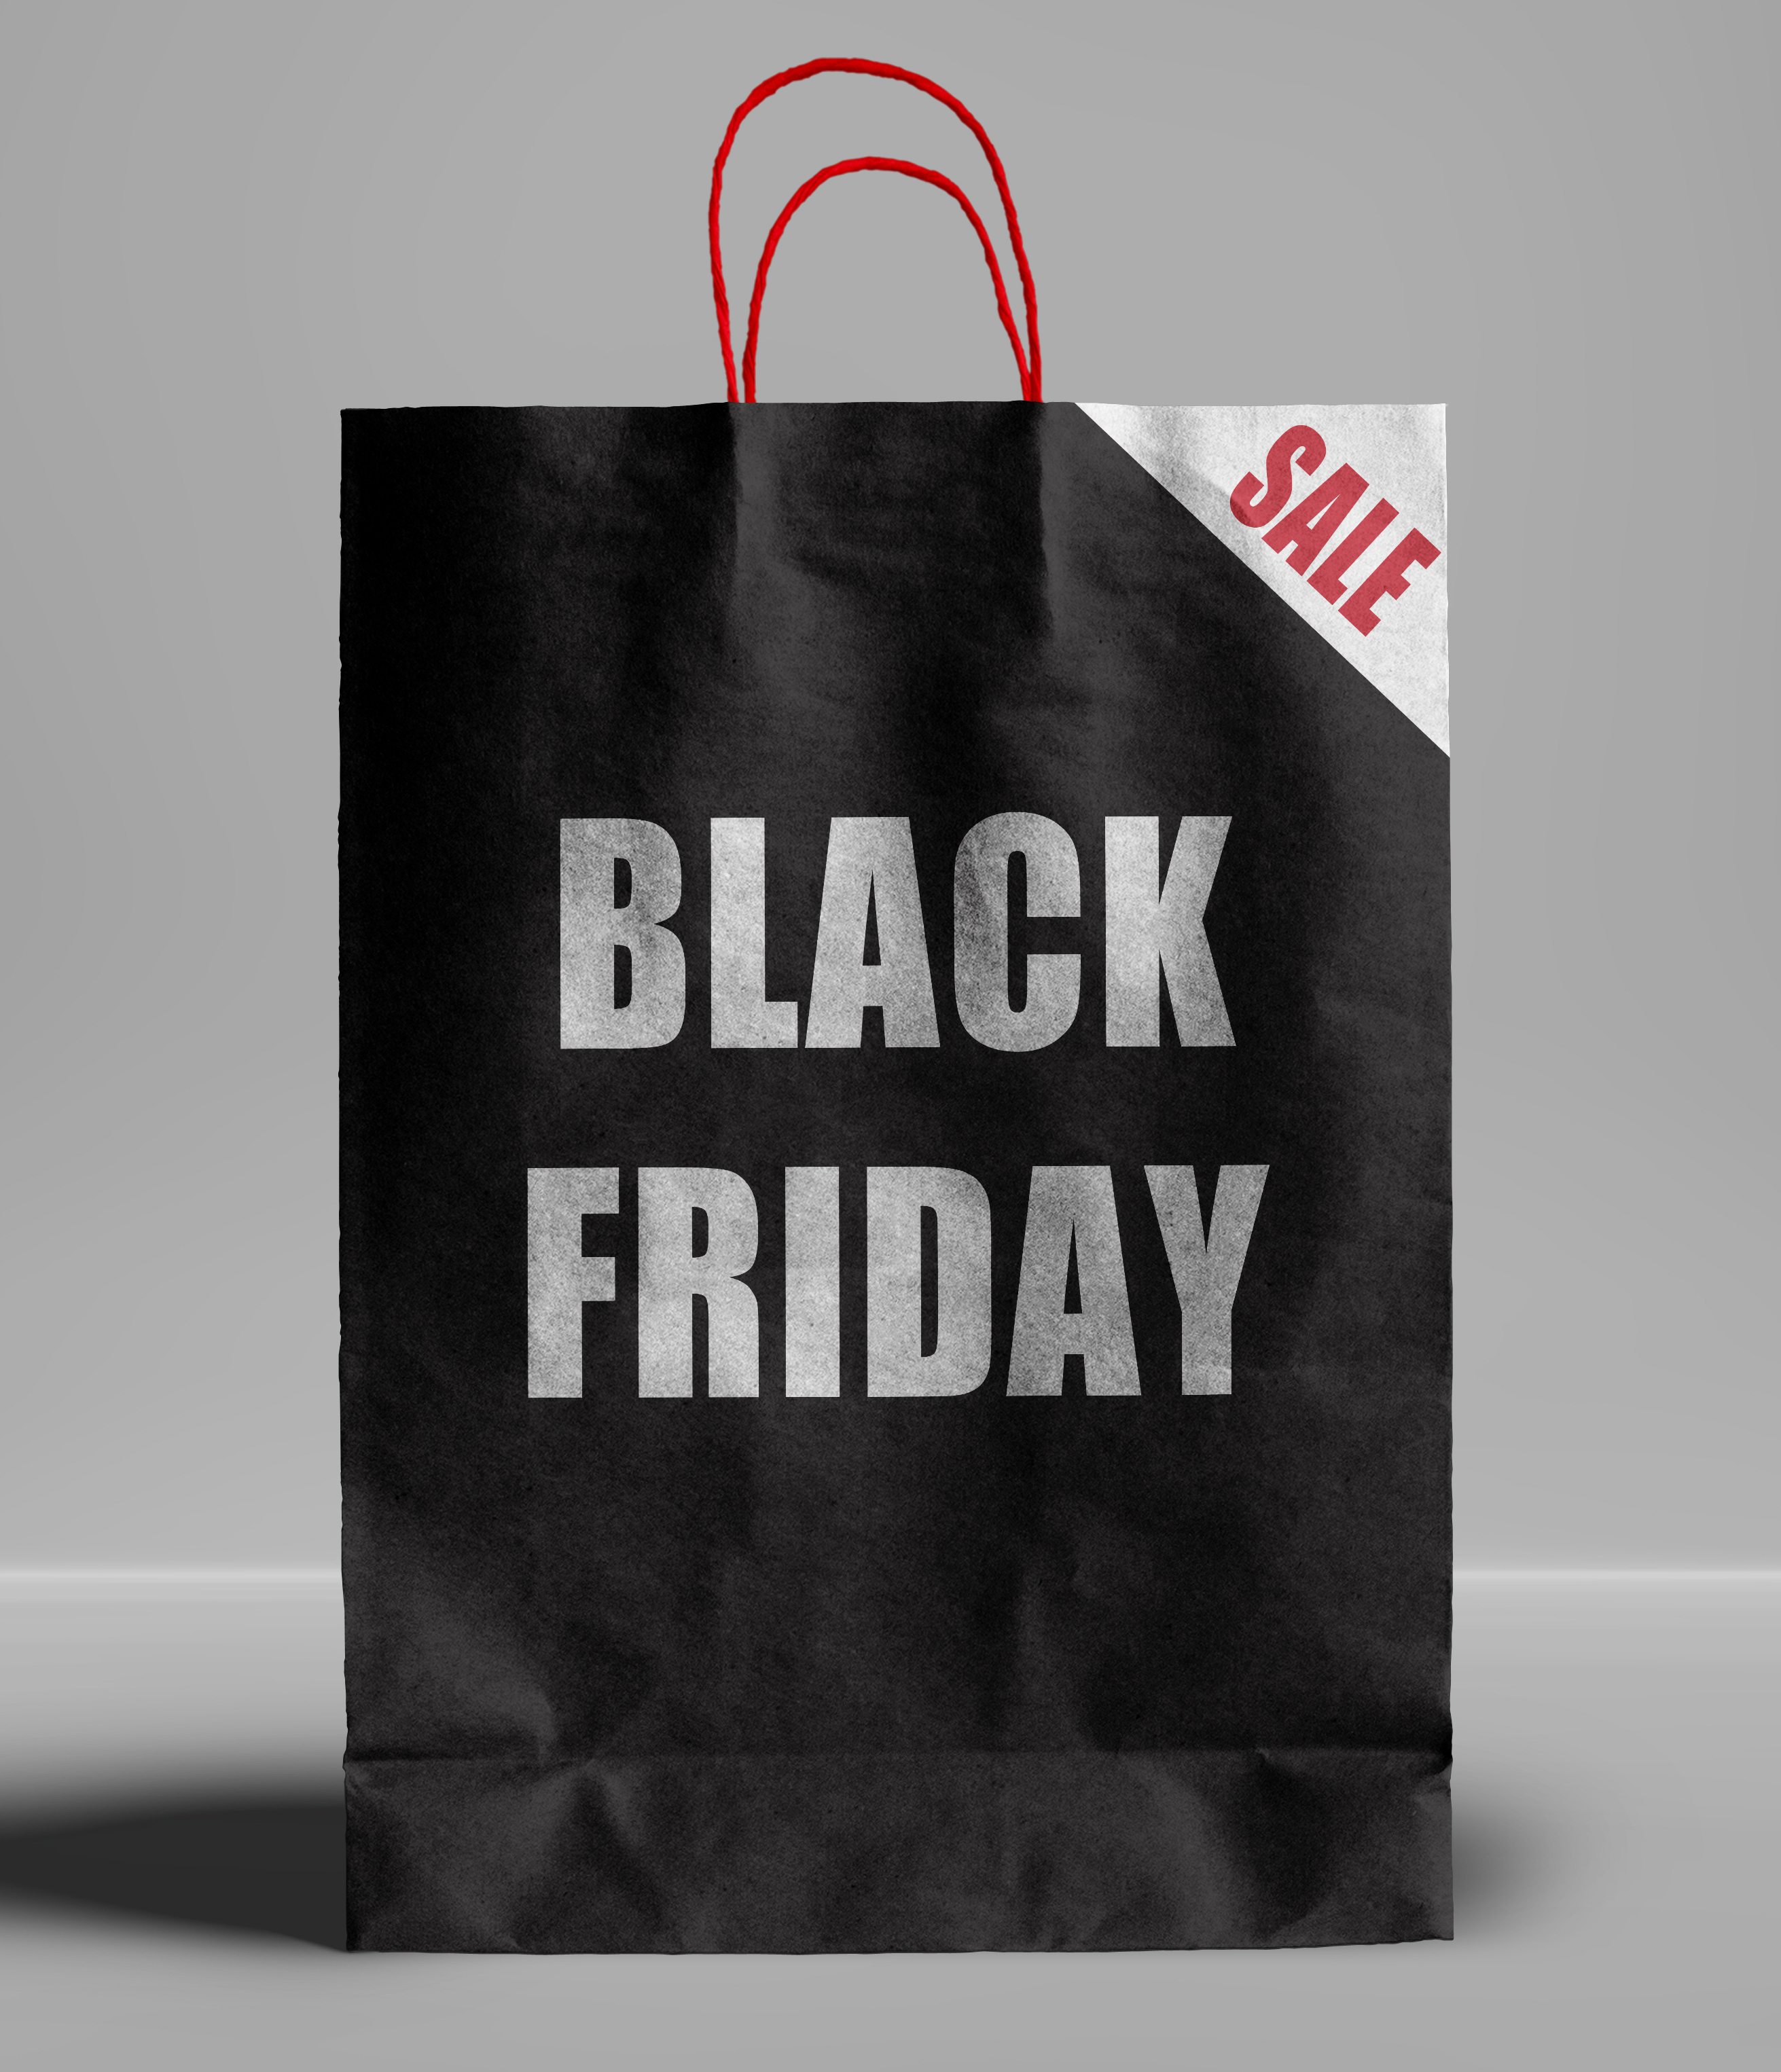 Black Friday paper bag.